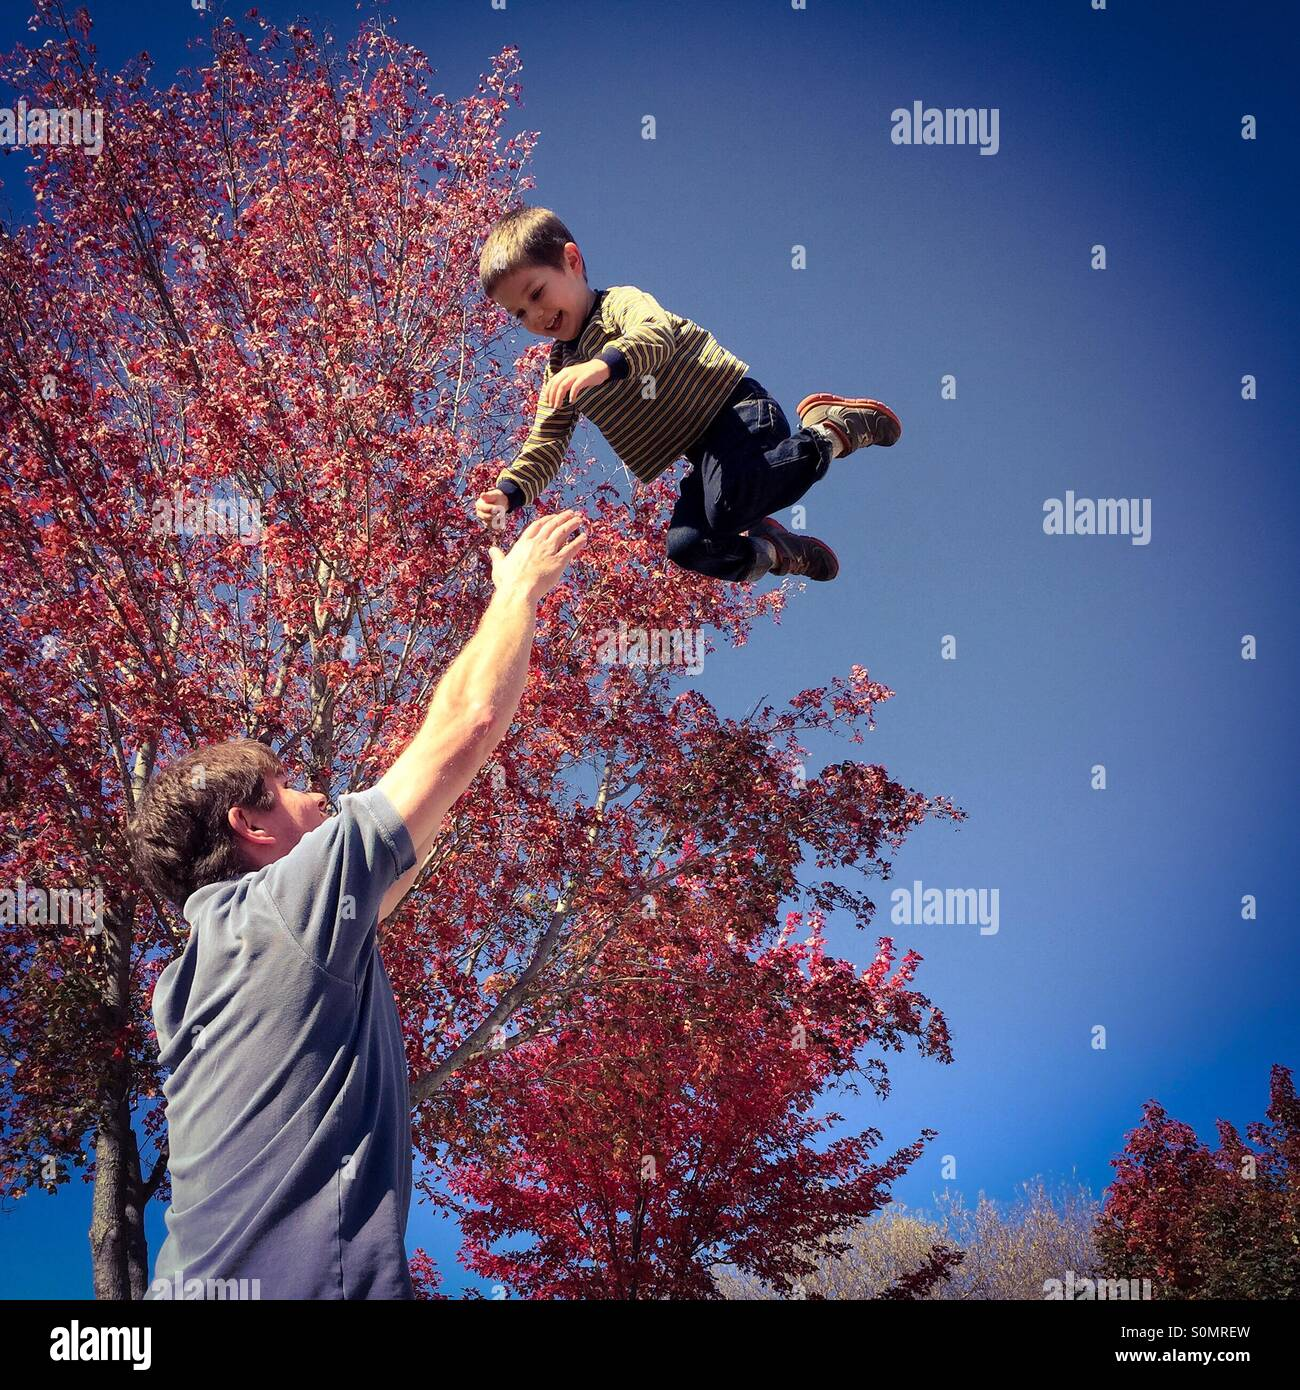 Image of a father tossing his laughing son into the air to catch him, taken during the autumn season - Stock Image